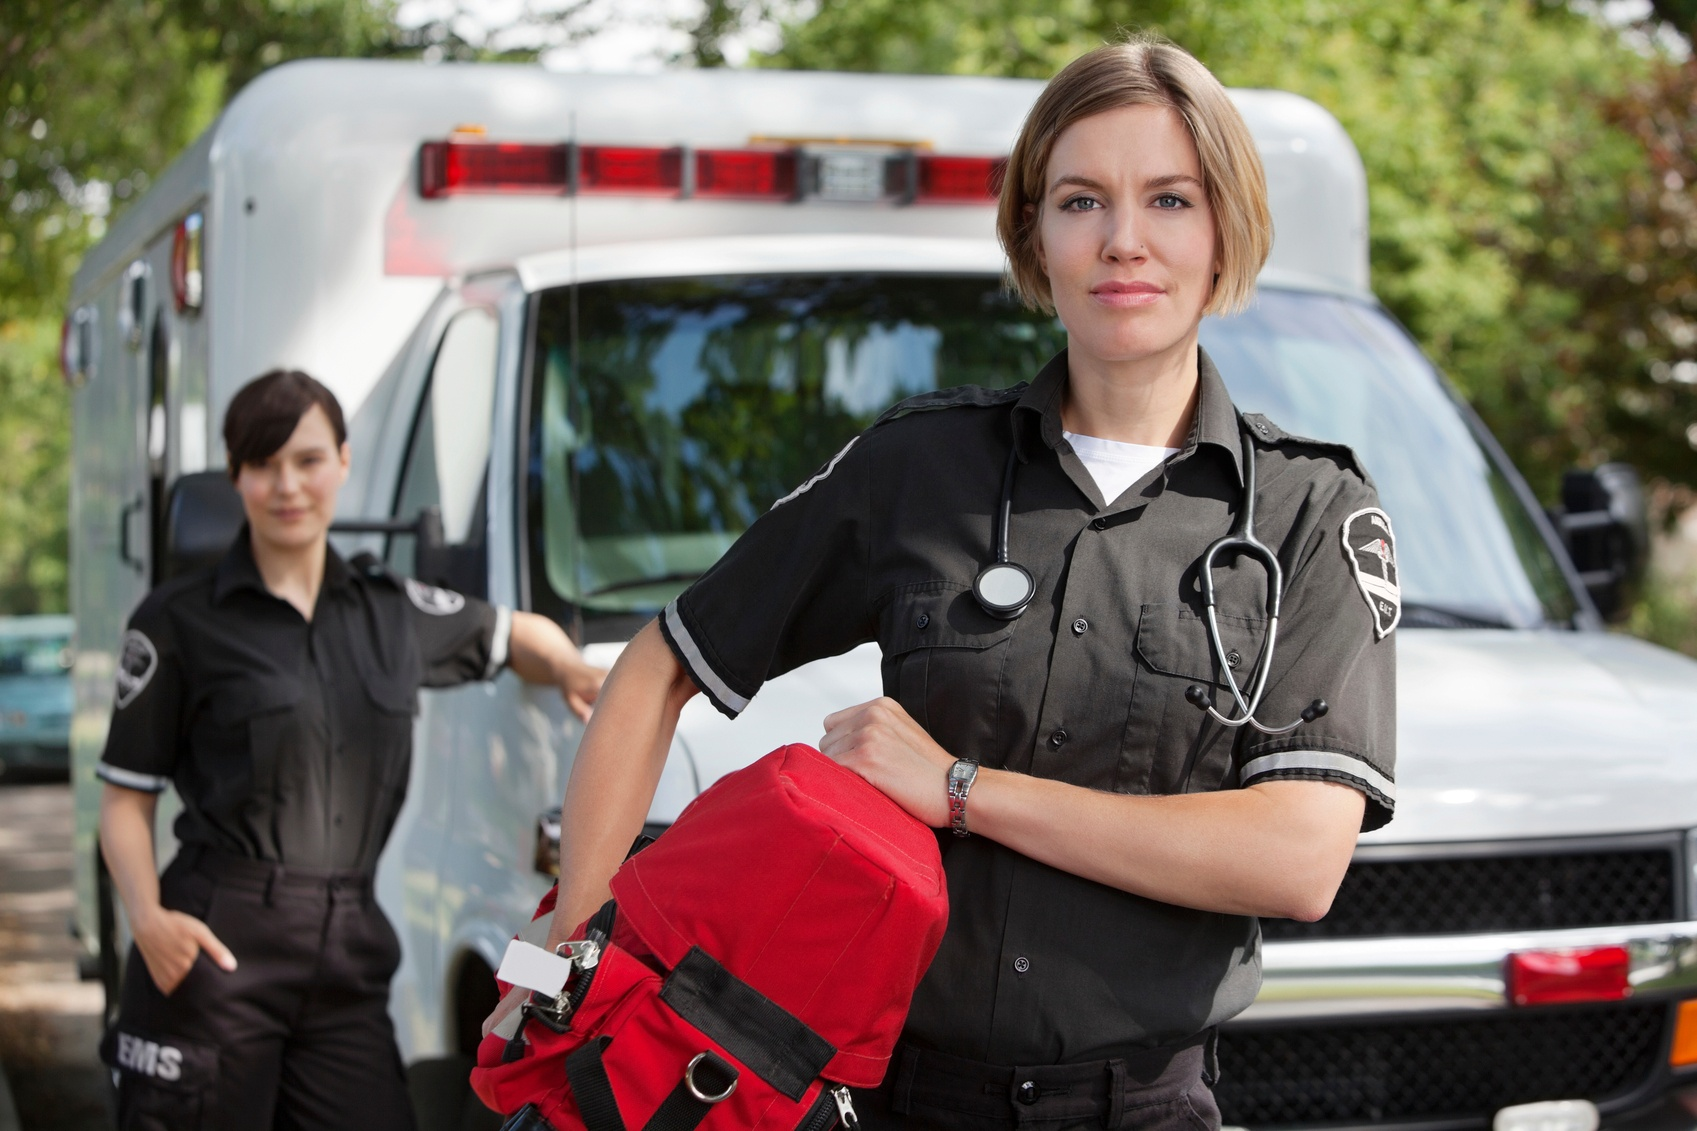 Developing the Future of EMS Through Mentoring